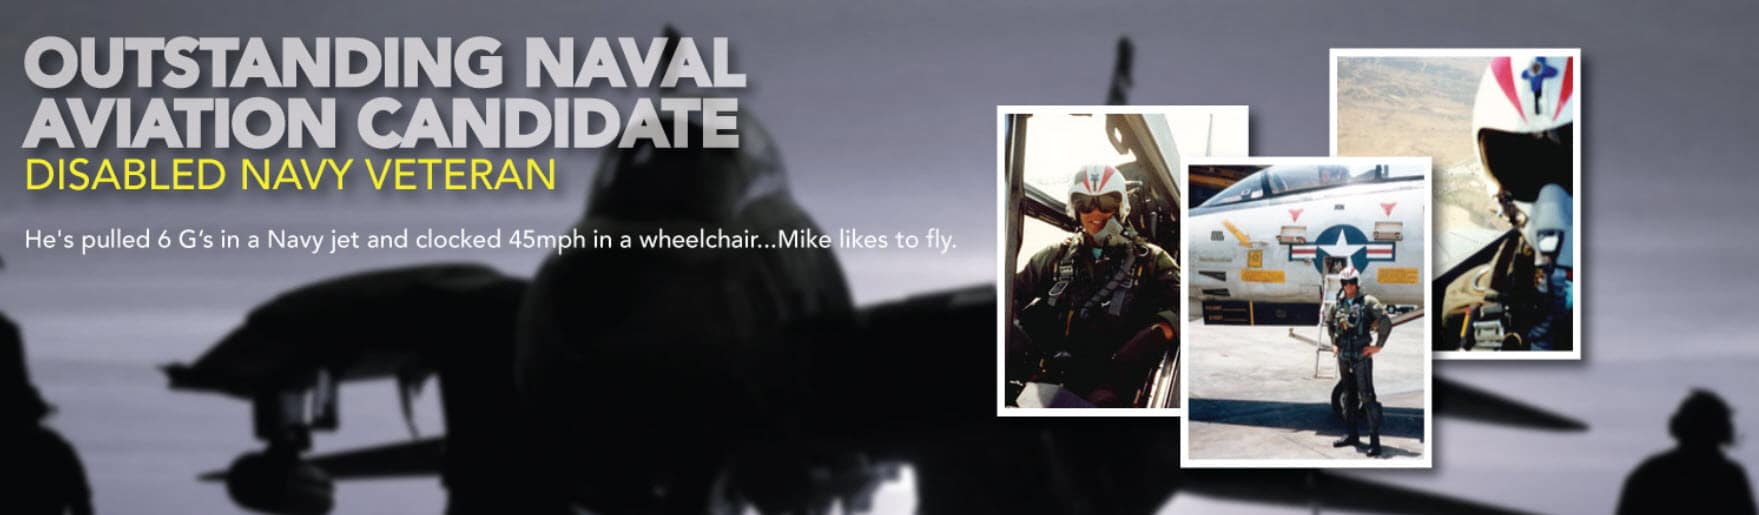 mike-savicki-disabled-navy-veteran